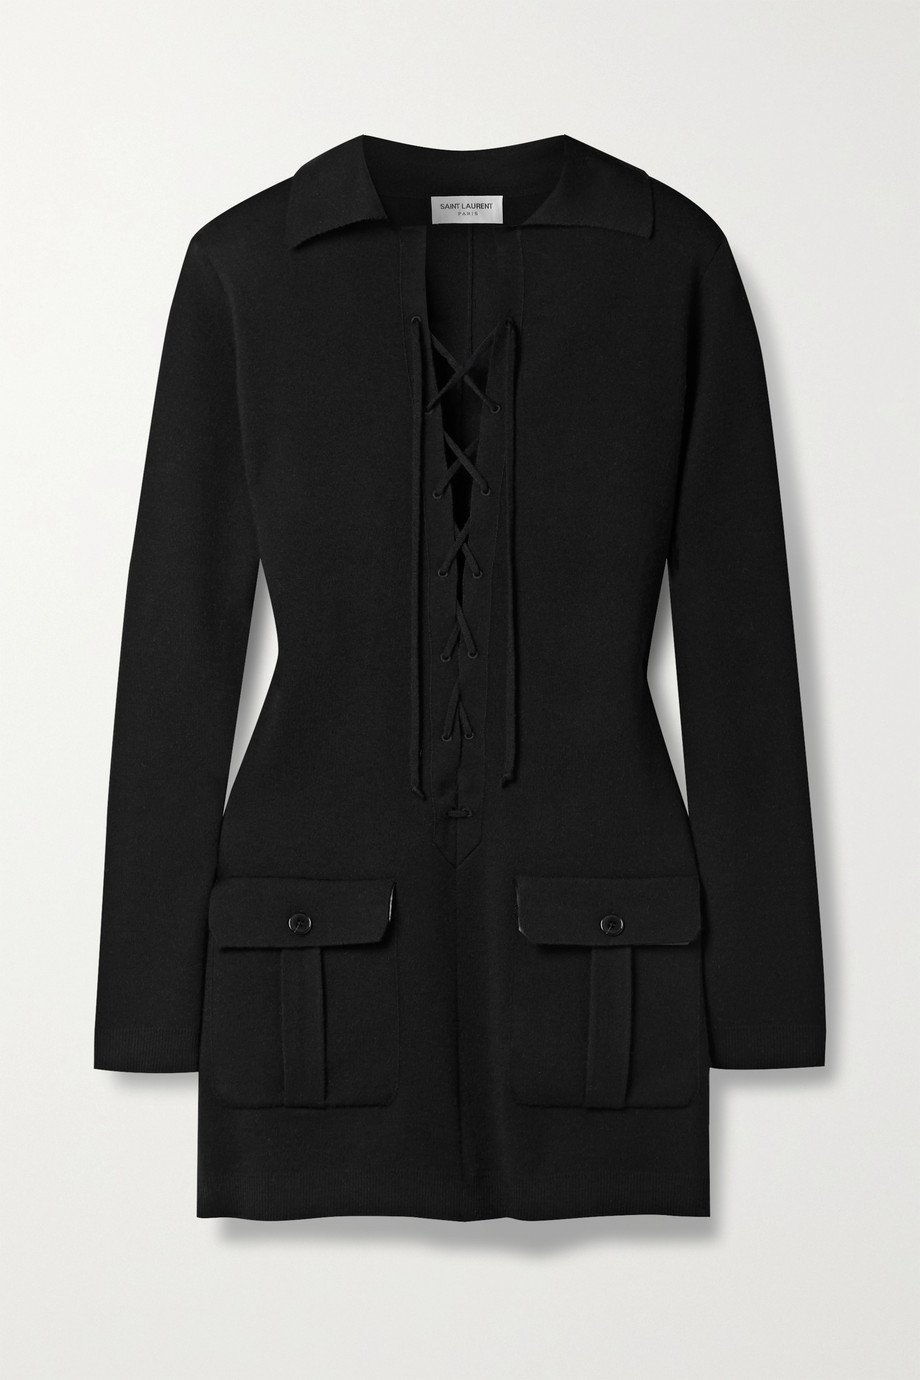 SAINT LAURENT Mini-robe en cachemire à lacets